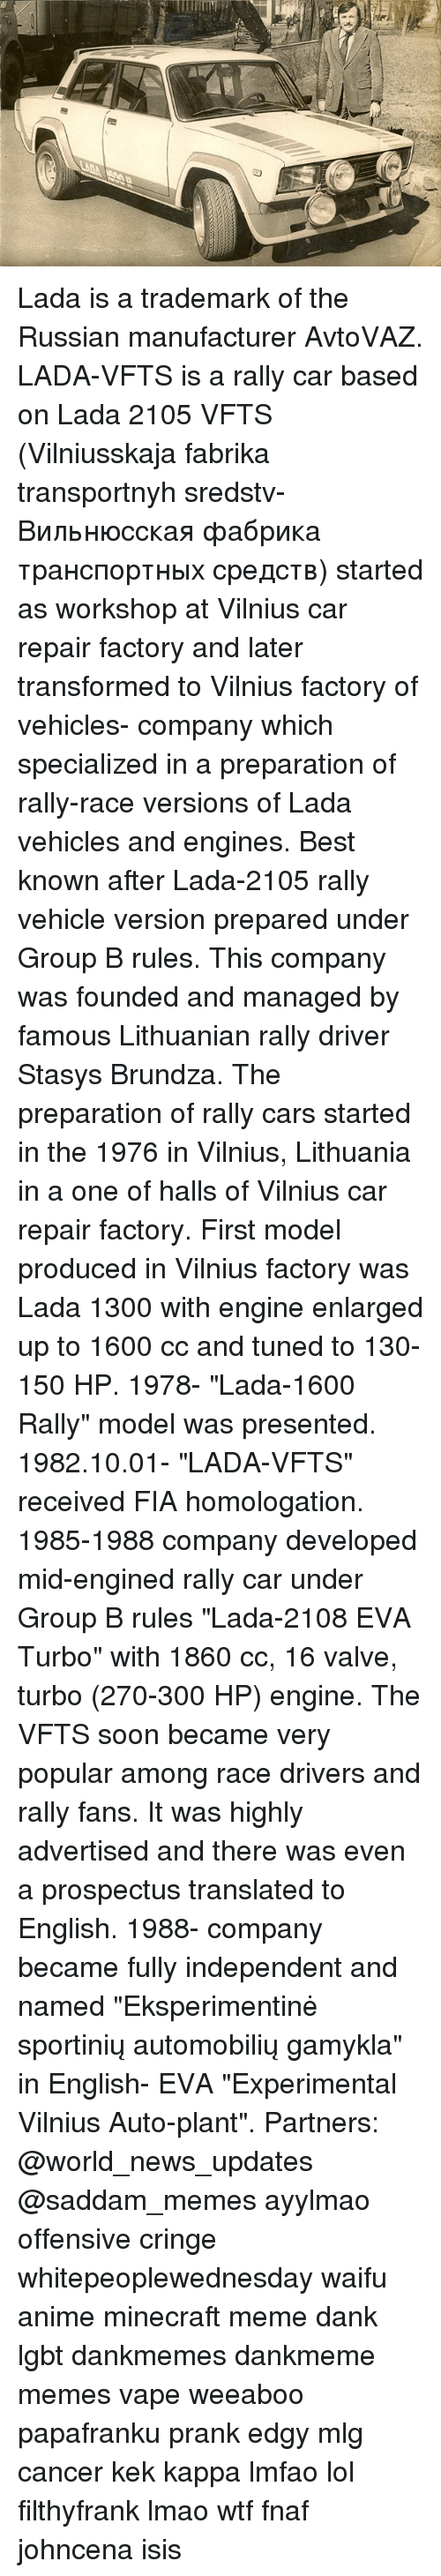 "rally car: Lada is a trademark of the Russian manufacturer AvtoVAZ. LADA-VFTS is a rally car based on Lada 2105 VFTS (Vilniusskaja fabrika transportnyh sredstv-Вильнюсская фабрика транспортных средств) started as workshop at Vilnius car repair factory and later transformed to Vilnius factory of vehicles- company which specialized in a preparation of rally-race versions of Lada vehicles and engines. Best known after Lada-2105 rally vehicle version prepared under Group B rules. This company was founded and managed by famous Lithuanian rally driver Stasys Brundza. The preparation of rally cars started in the 1976 in Vilnius, Lithuania in a one of halls of Vilnius car repair factory. First model produced in Vilnius factory was Lada 1300 with engine enlarged up to 1600 cc and tuned to 130-150 HP. 1978- ""Lada-1600 Rally"" model was presented. 1982.10.01- ""LADA-VFTS"" received FIA homologation. 1985-1988 company developed mid-engined rally car under Group B rules ""Lada-2108 EVA Turbo"" with 1860 cc, 16 valve, turbo (270-300 HP) engine. The VFTS soon became very popular among race drivers and rally fans. It was highly advertised and there was even a prospectus translated to English. 1988- company became fully independent and named ""Eksperimentinė sportinių automobilių gamykla"" in English- EVA ""Experimental Vilnius Auto-plant"". Partners: @world_news_updates @saddam_memes ayylmao offensive cringe whitepeoplewednesday waifu anime minecraft meme dank lgbt dankmemes dankmeme memes vape weeaboo papafranku prank edgy mlg cancer kek kappa lmfao lol filthyfrank lmao wtf fnaf johncena isis"